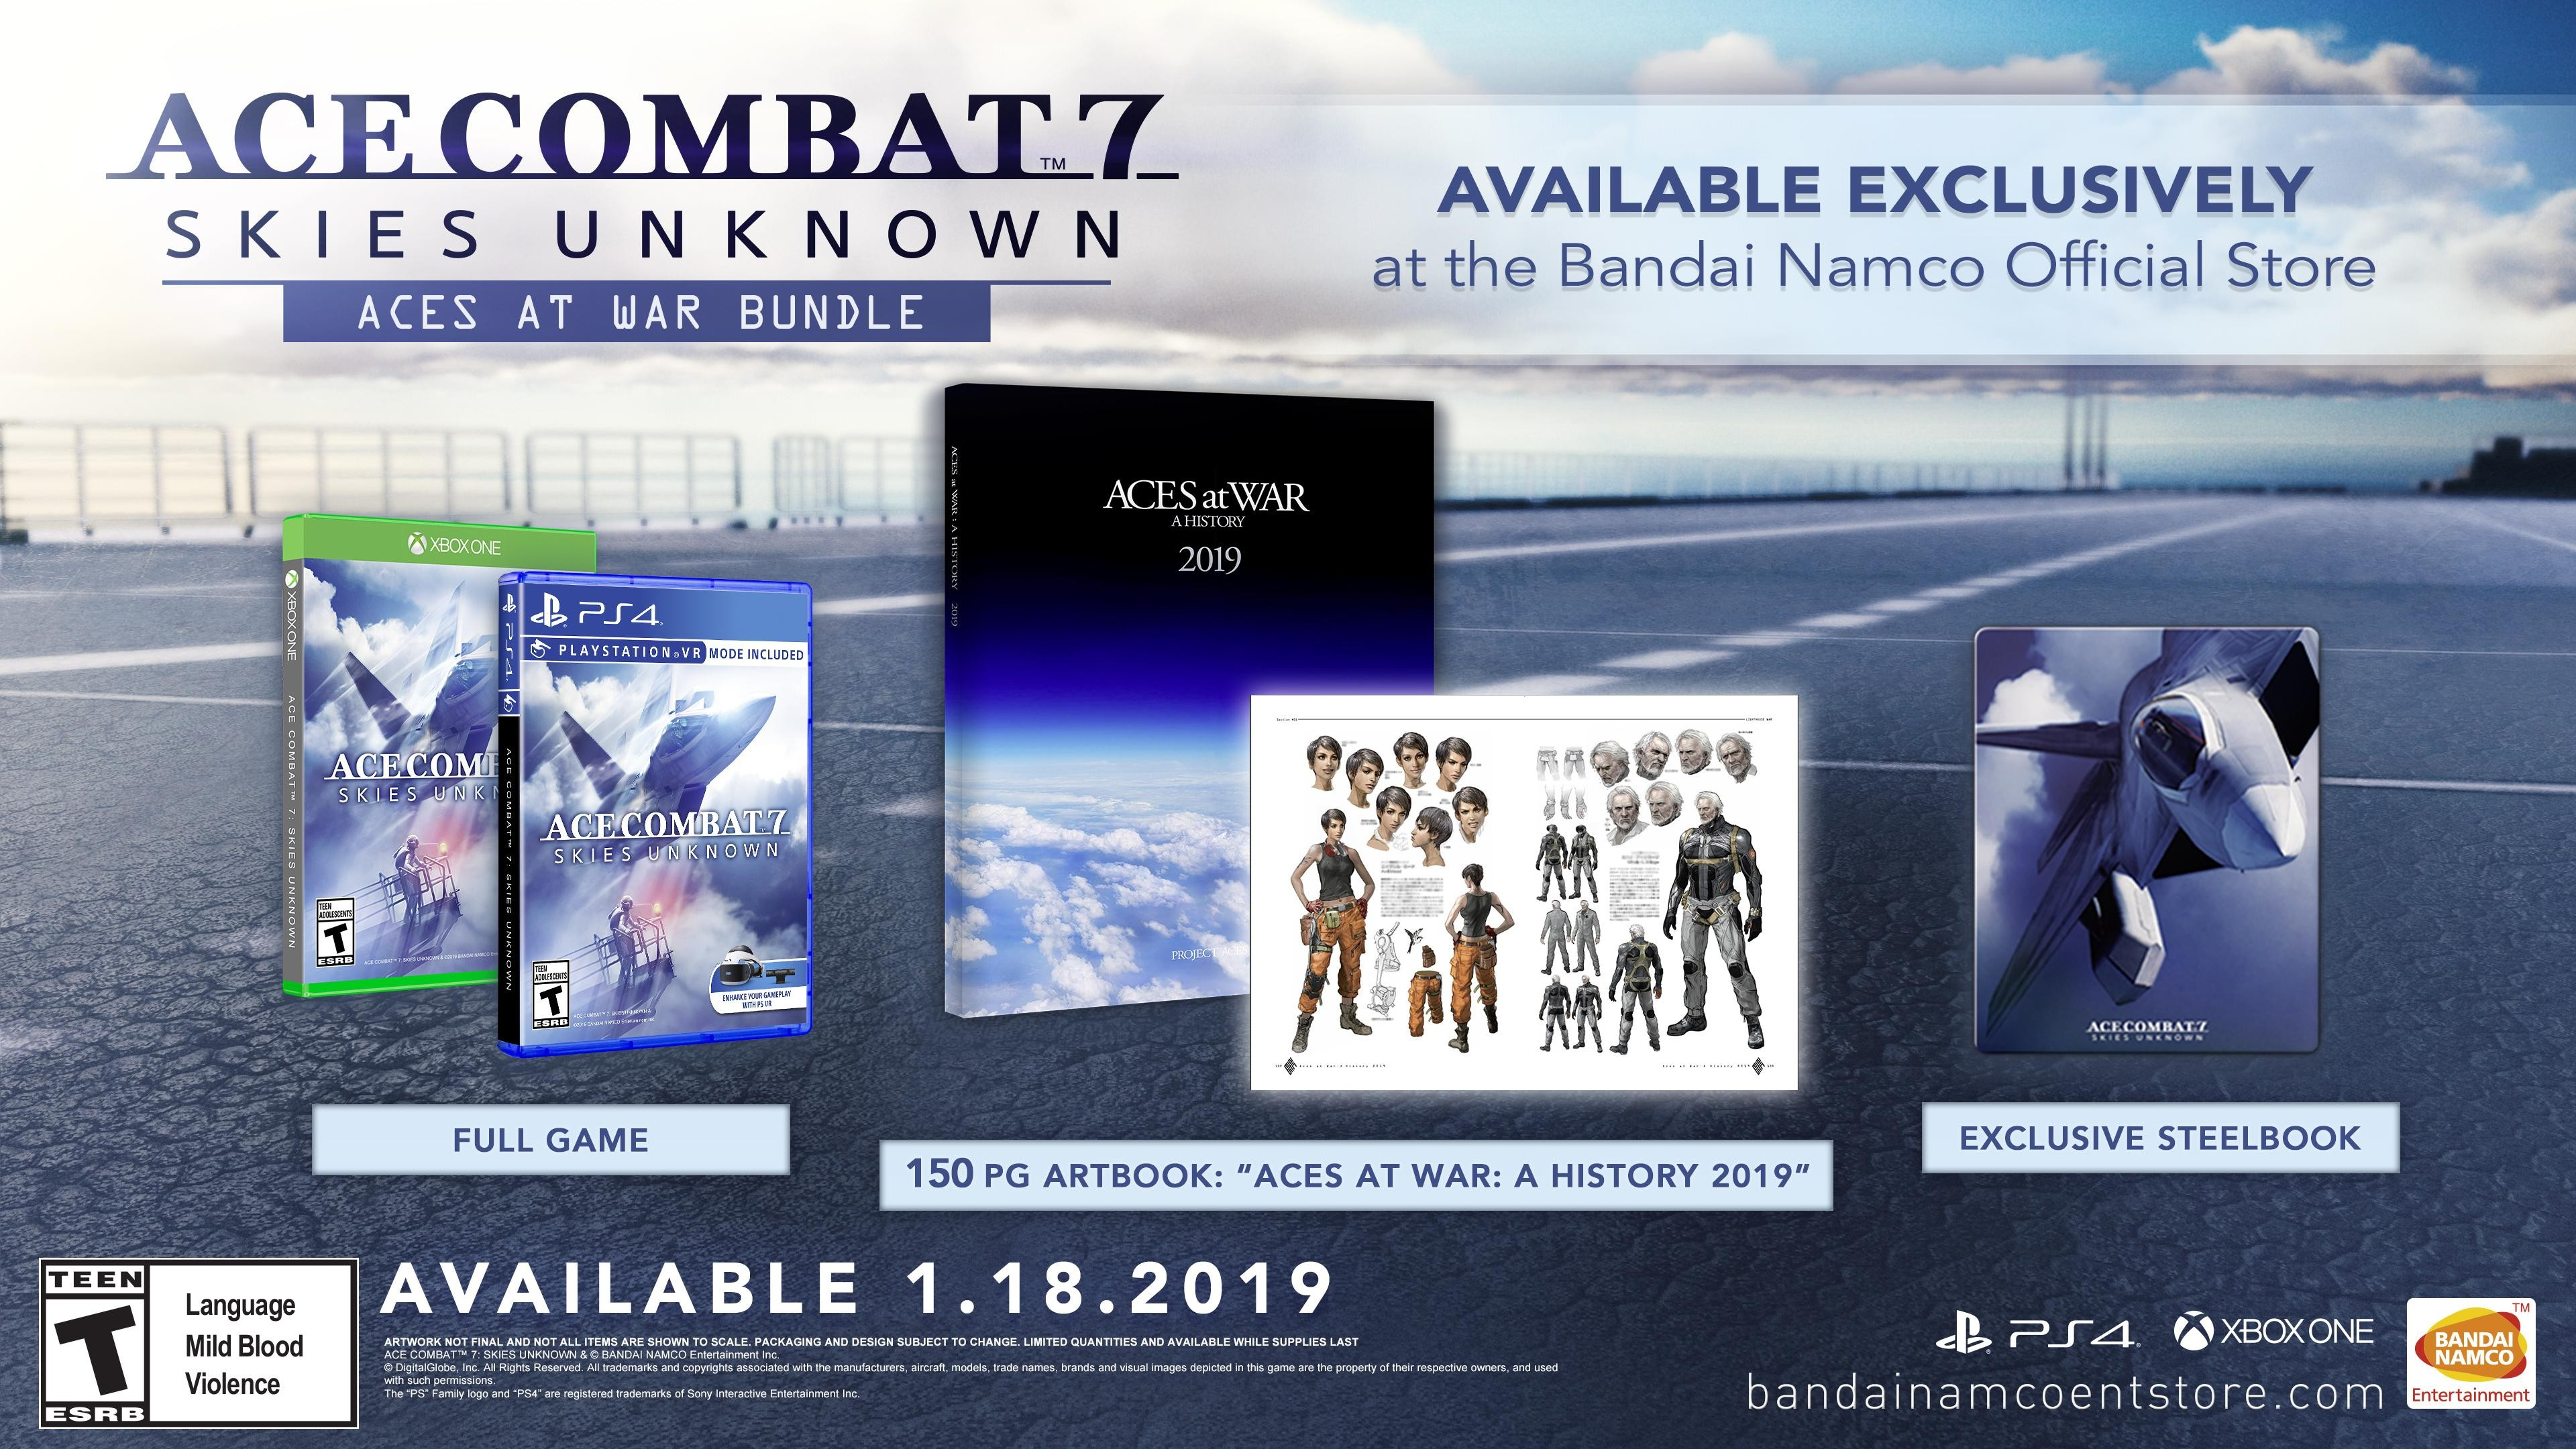 Ace Combat 7: Skies Unknown 'Aces at War Bundle'